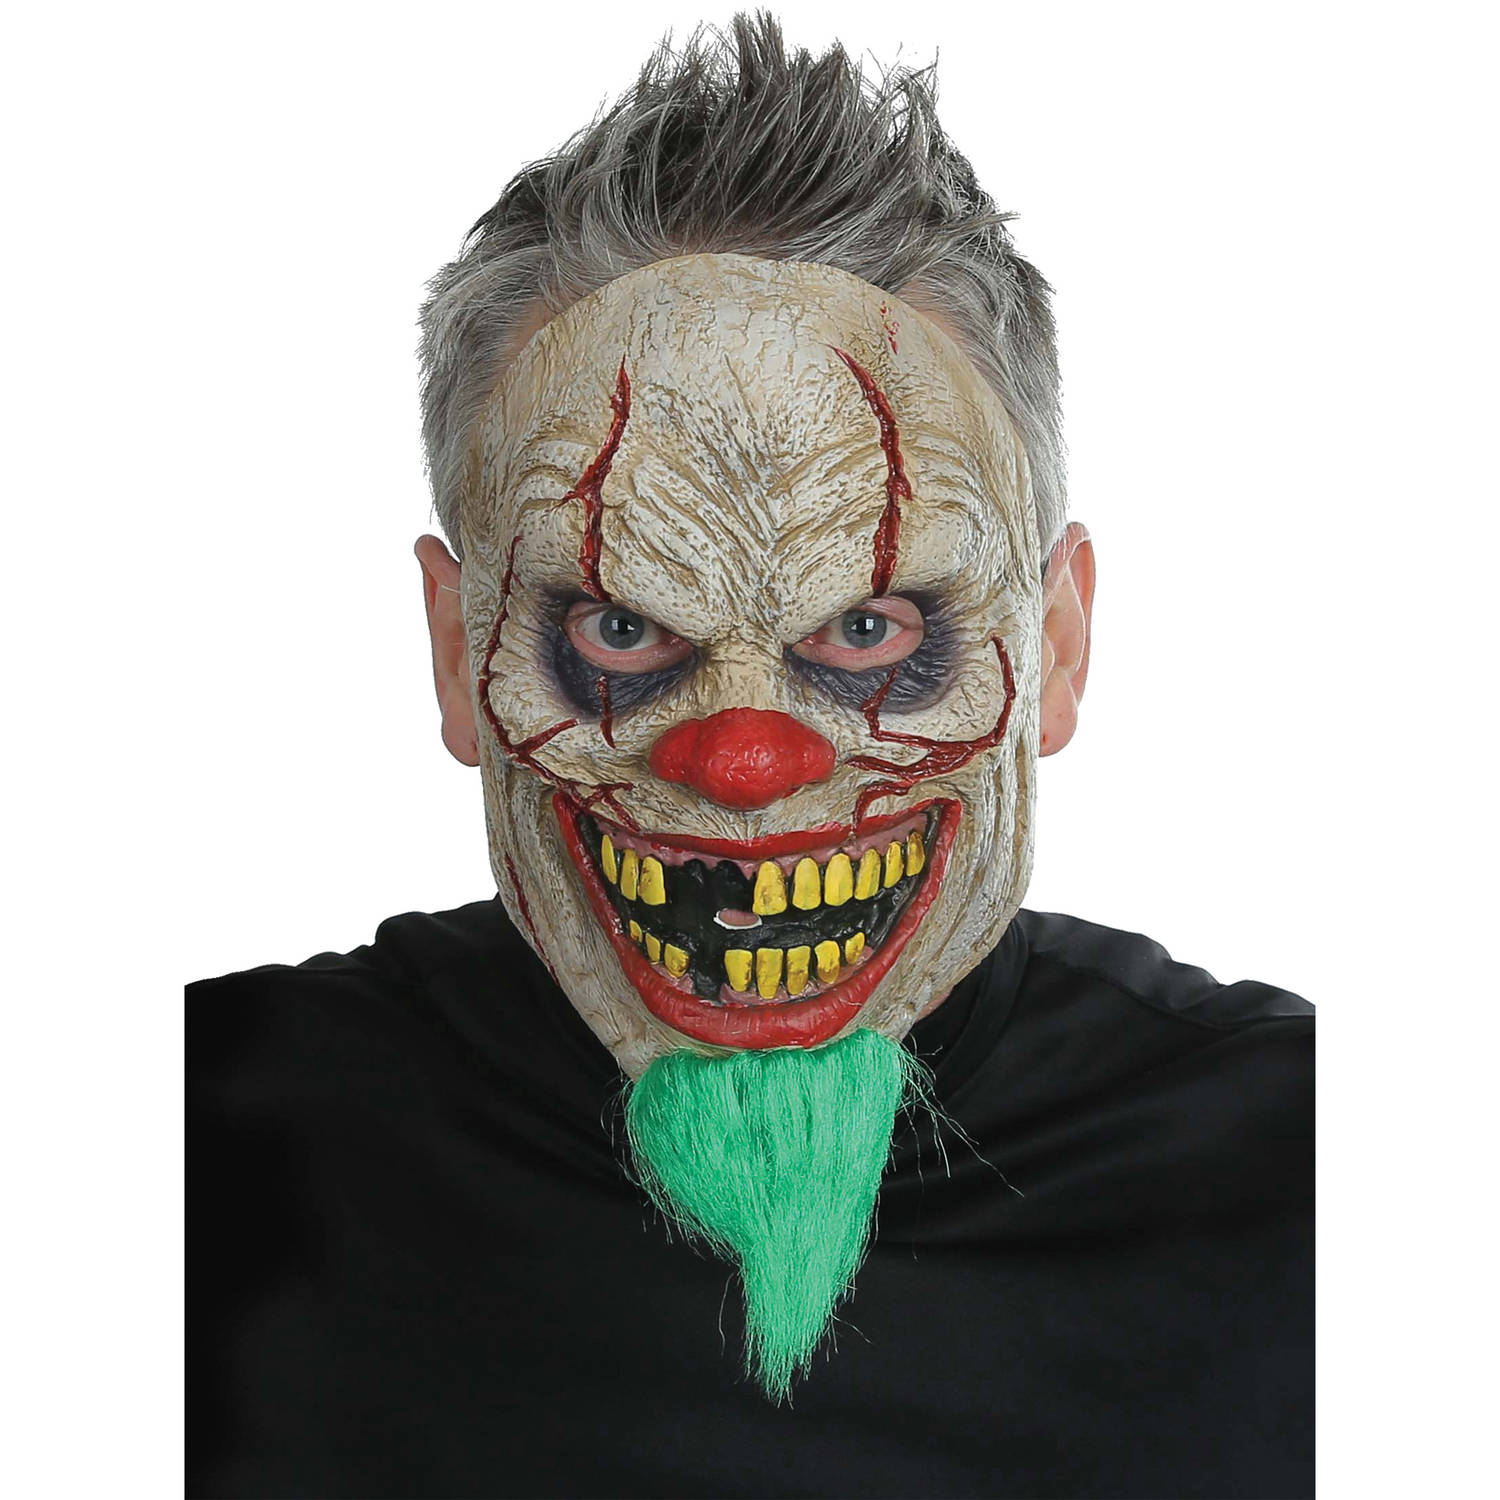 Bad News Clown Mask Adult Halloween Accessory